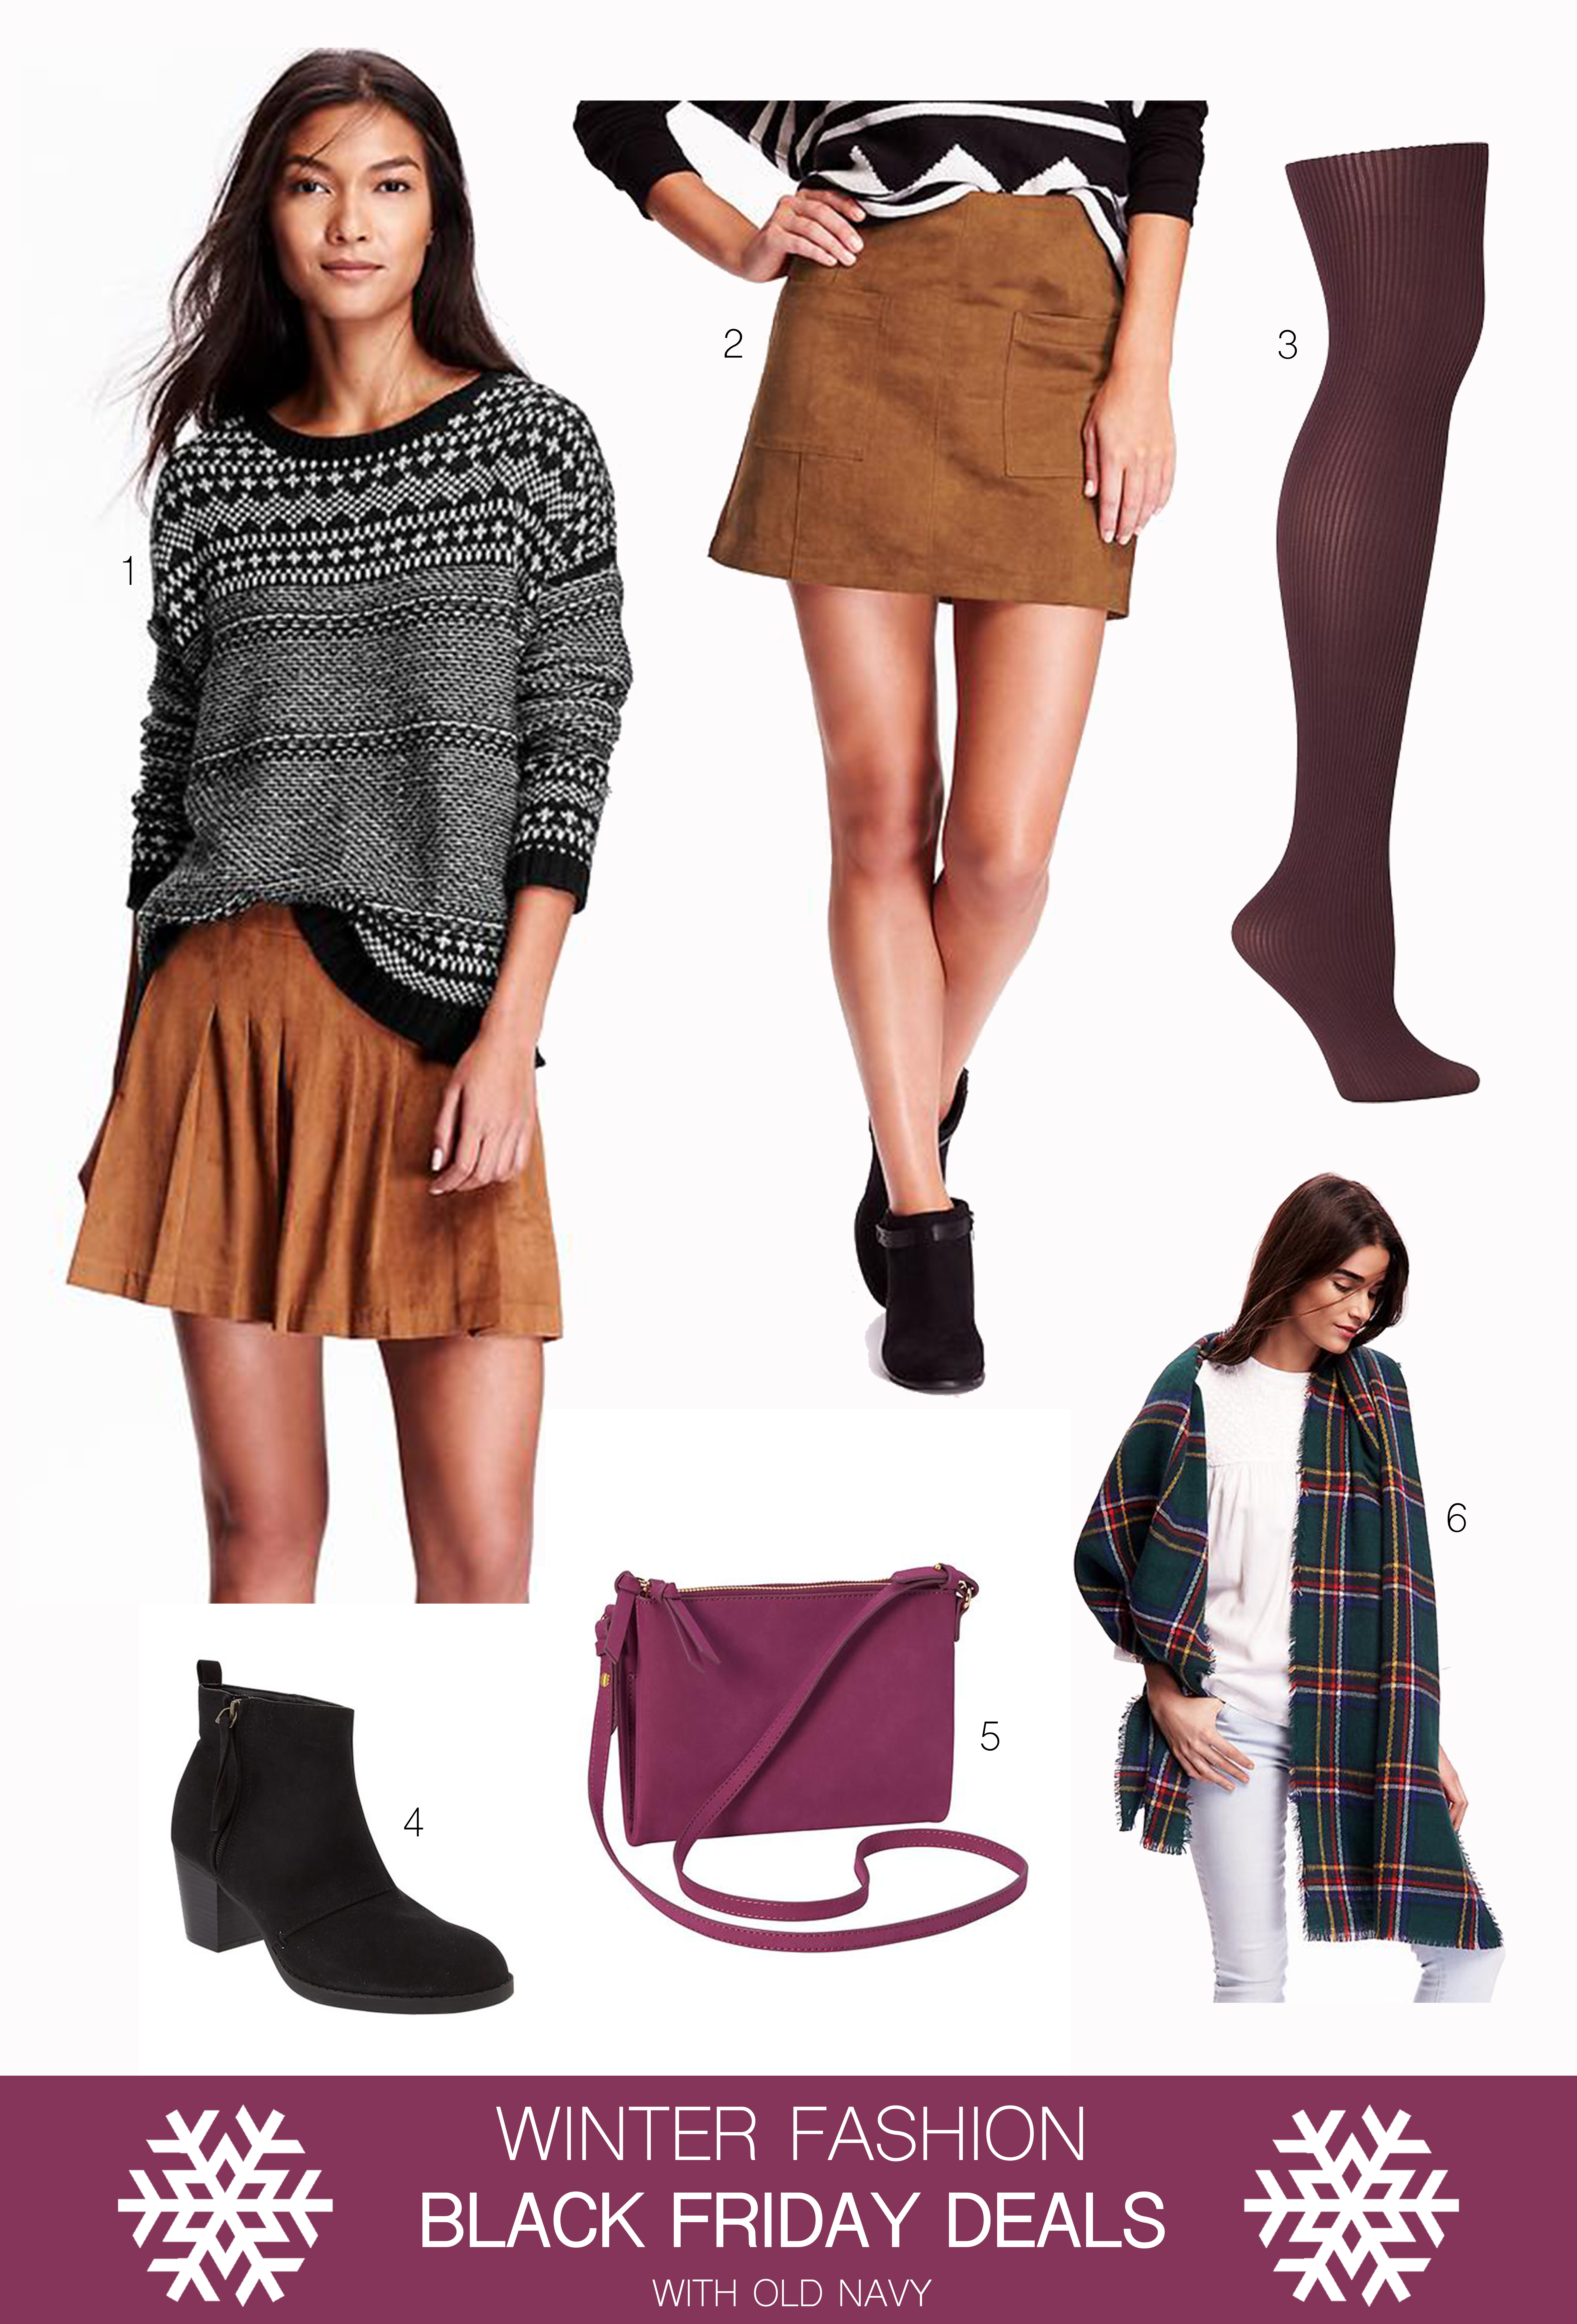 Winter Fashion Black Friday Deals at Old Navy Curated by Fashion Music Blogger Rachael Burgess